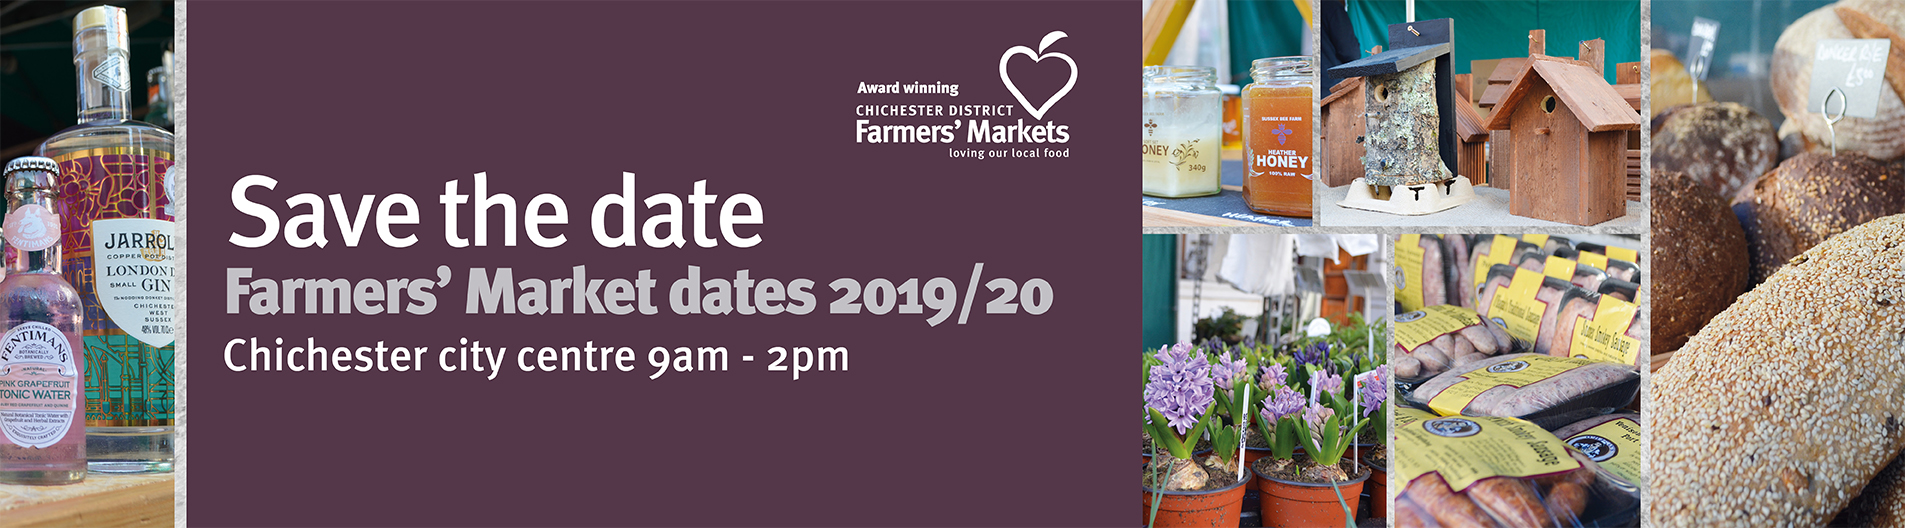 Save the date - Farmer's Market